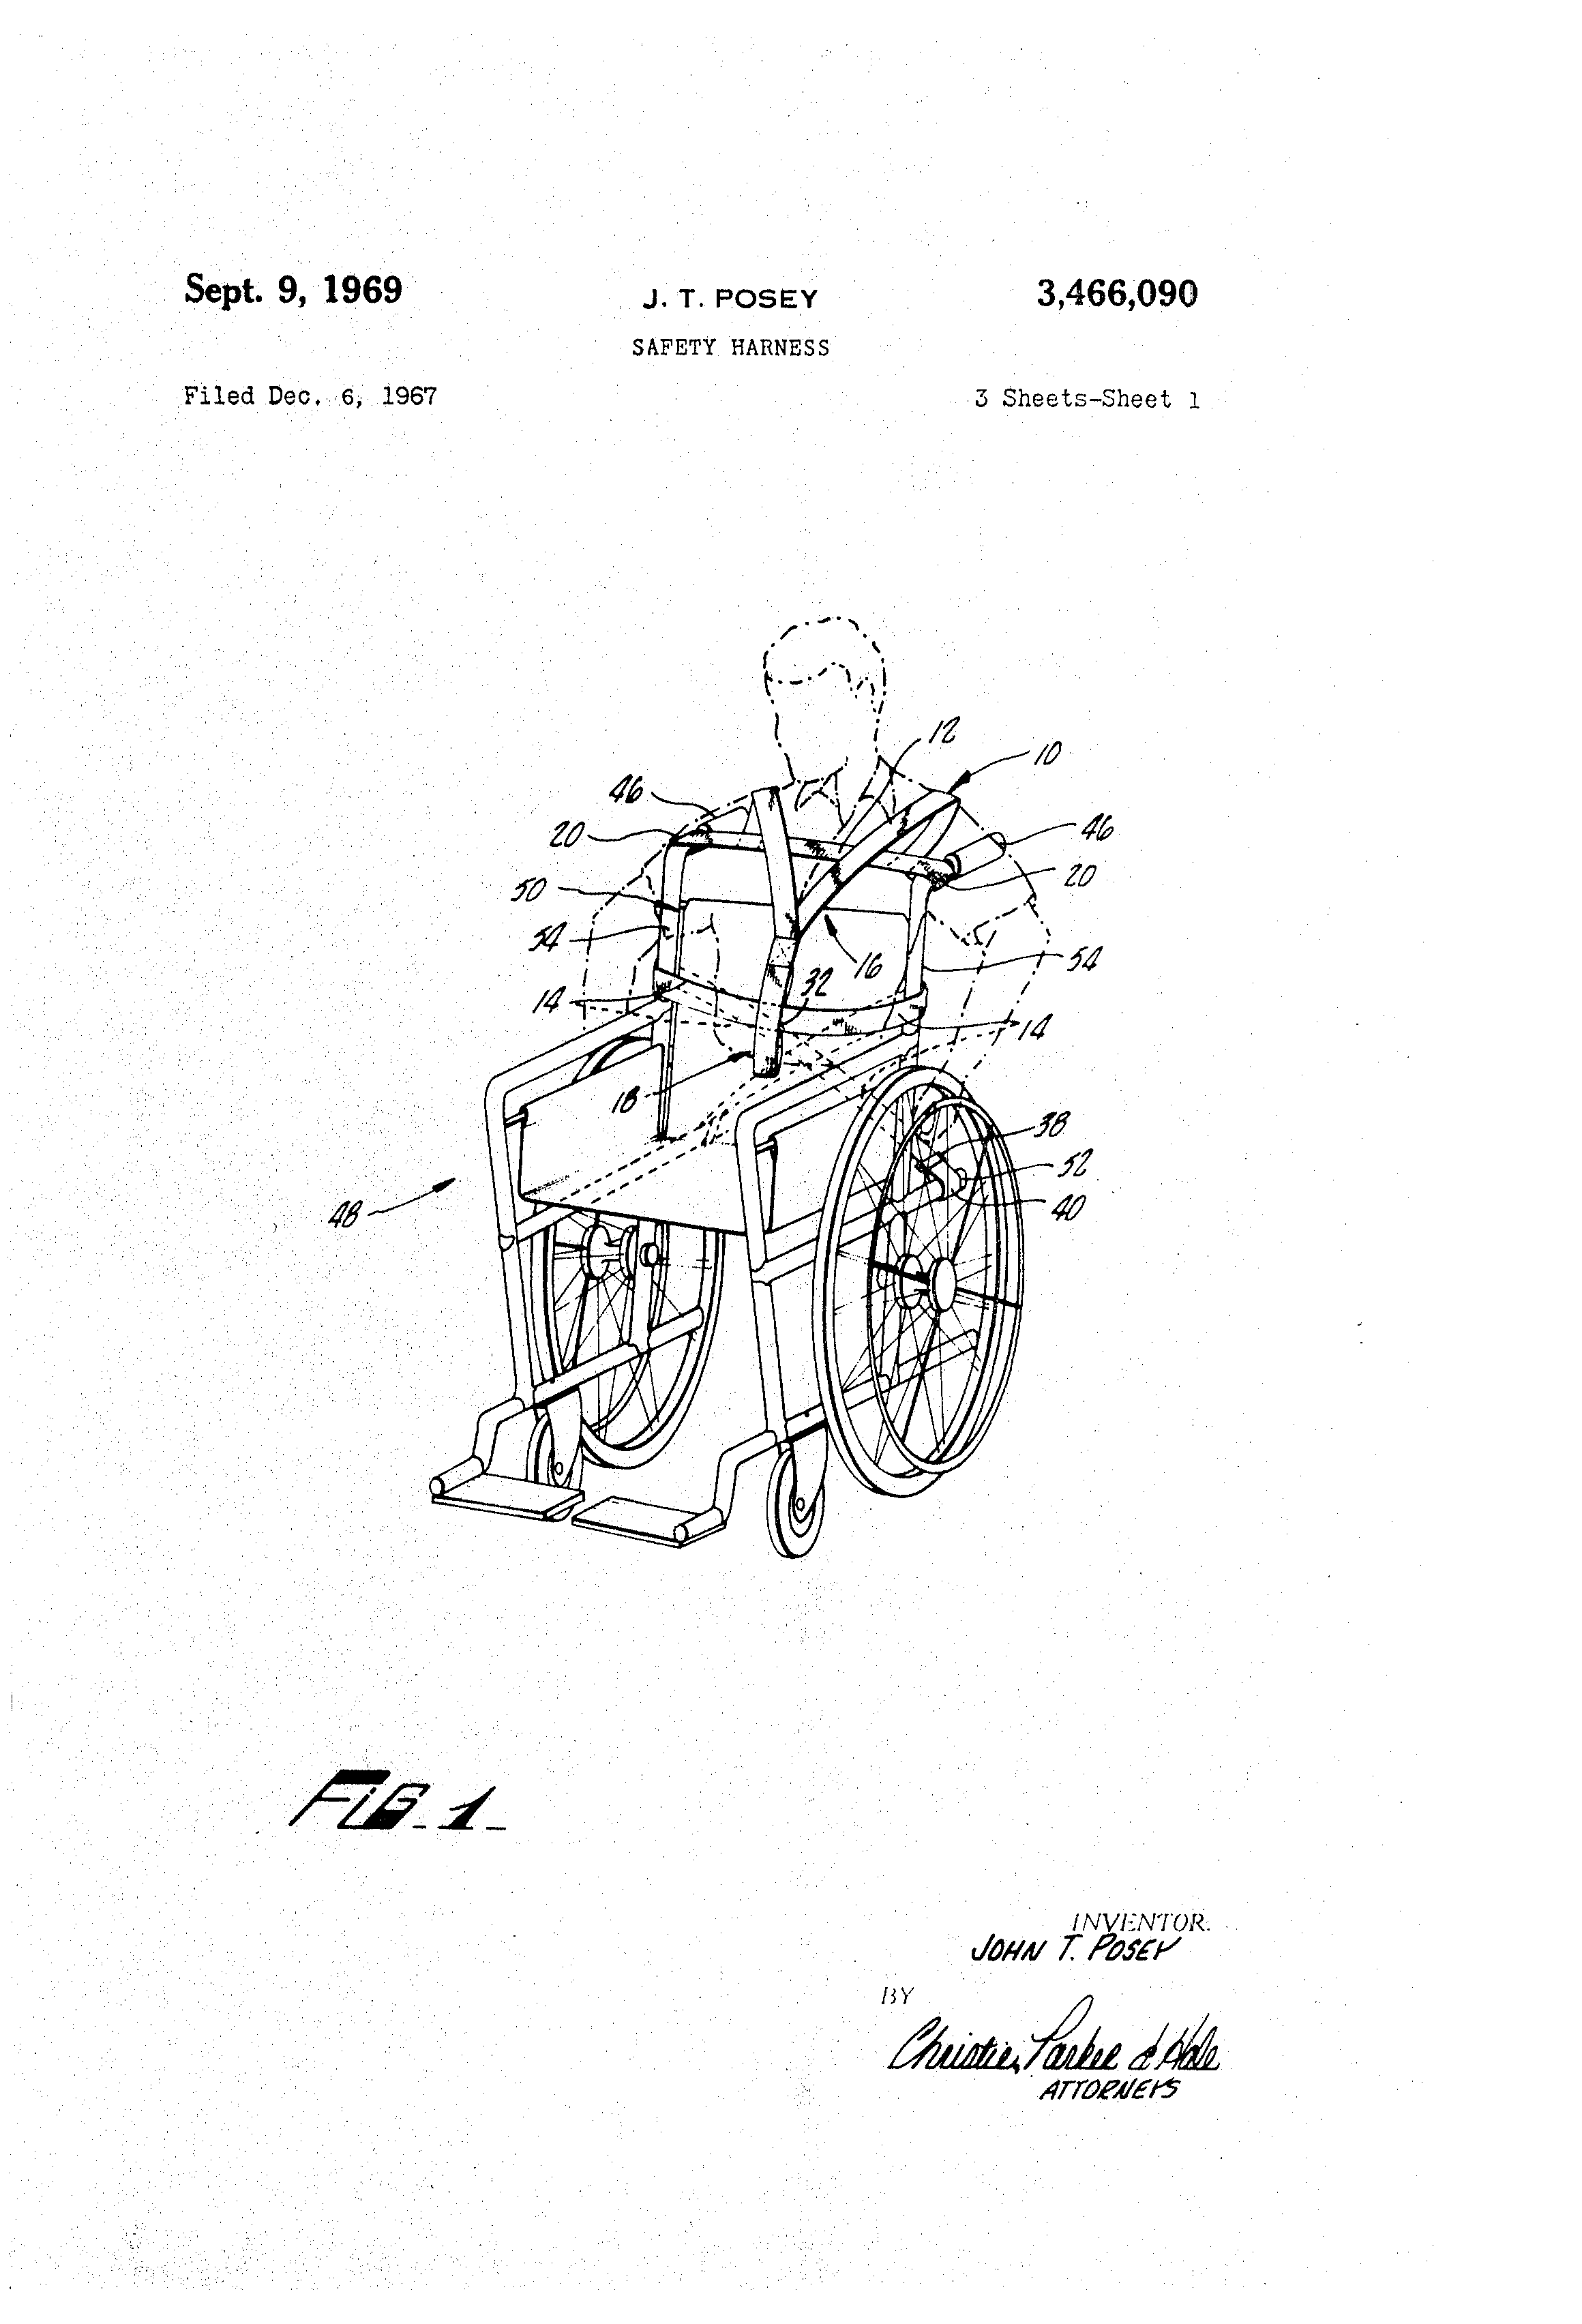 patent us3466090 - safety harness